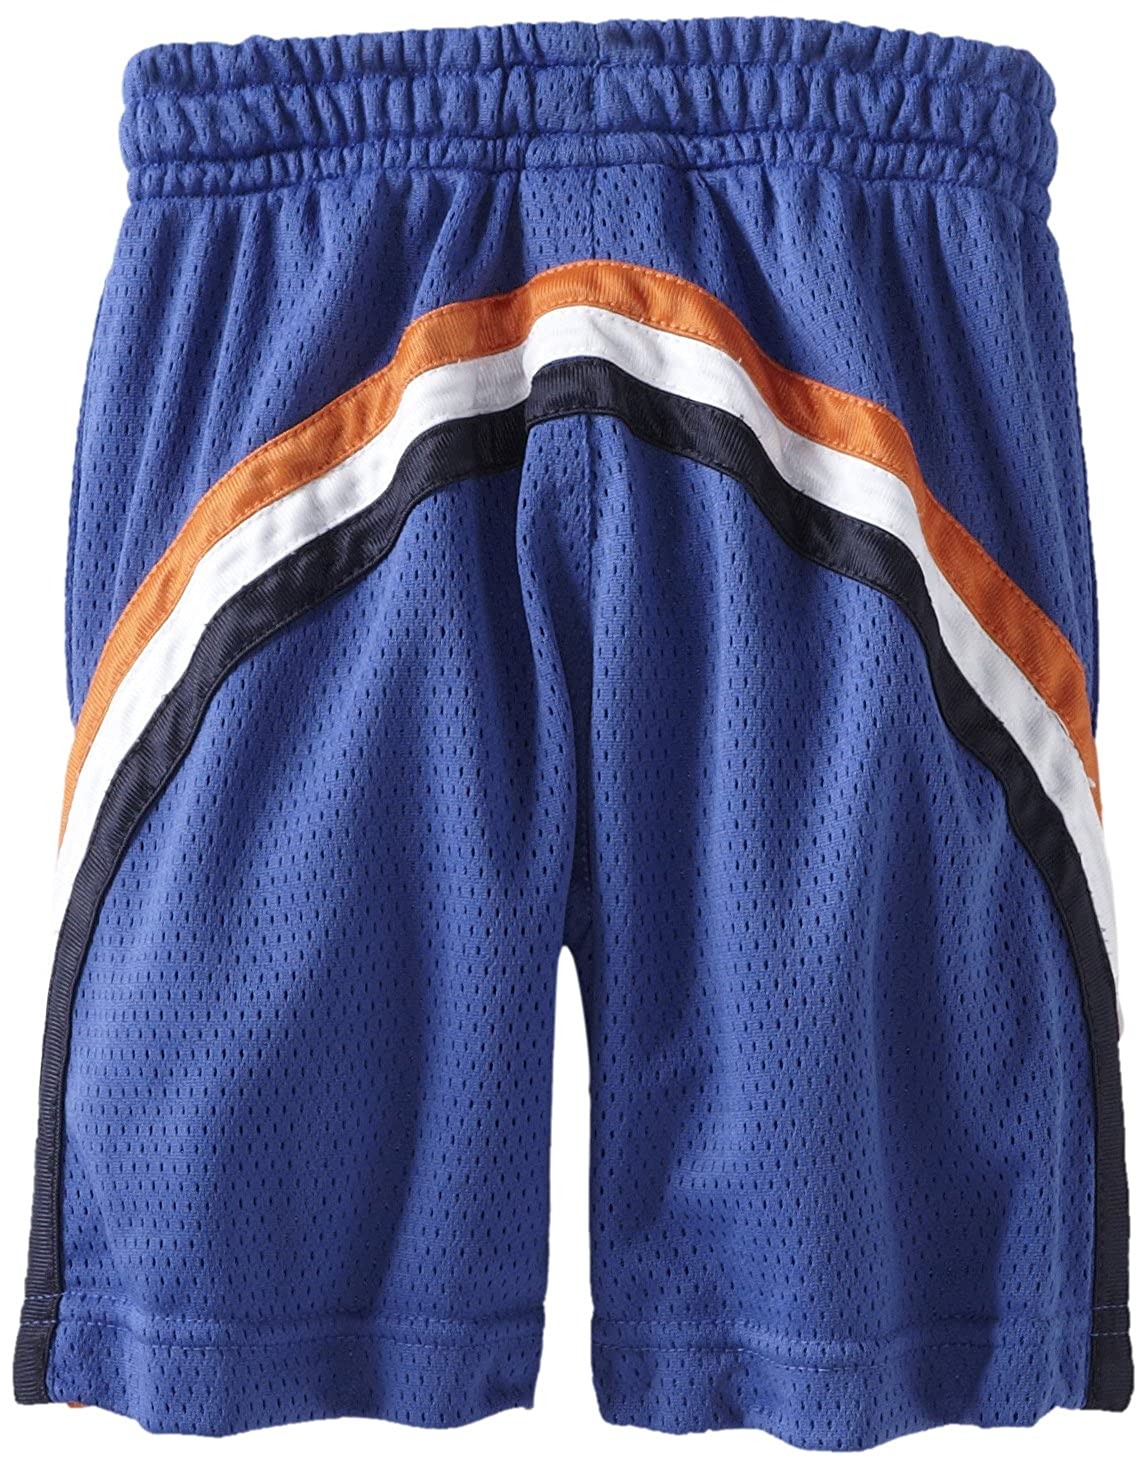 Wes /& Willy Big Boys Curve Stripe Mesh Short Kelly Large//14-16 Wes /& Willy Boys 8-20